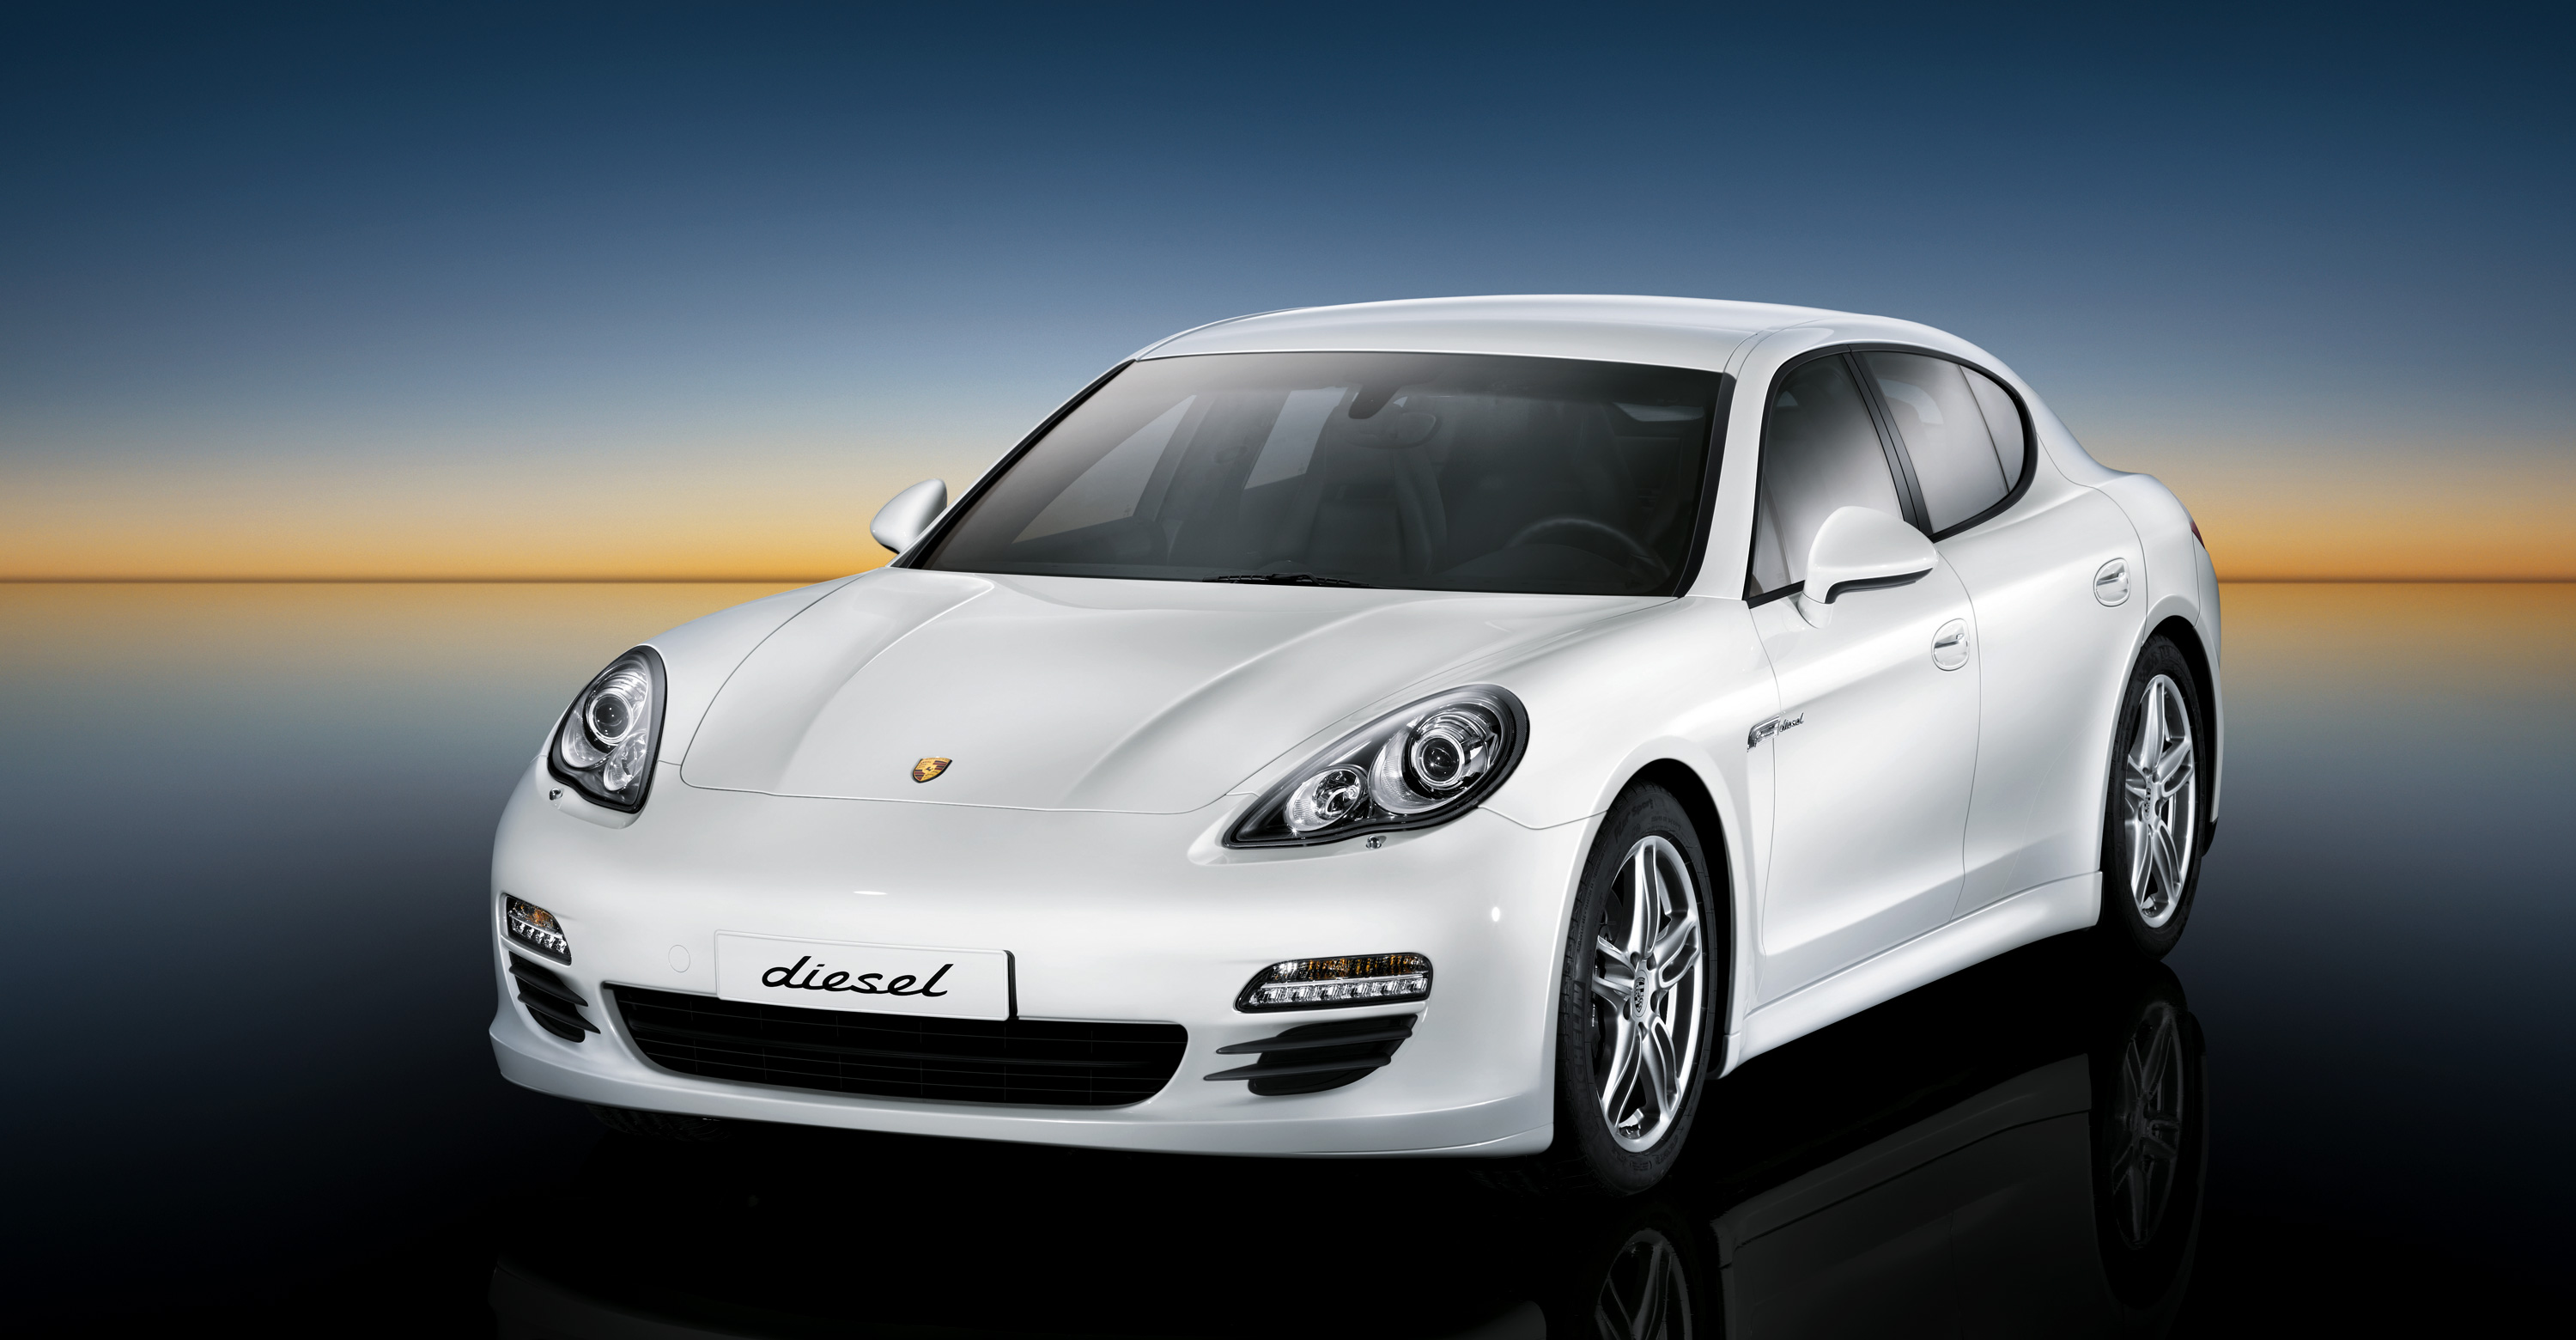 2011 White Porsche Panamera Diesel wallpapers